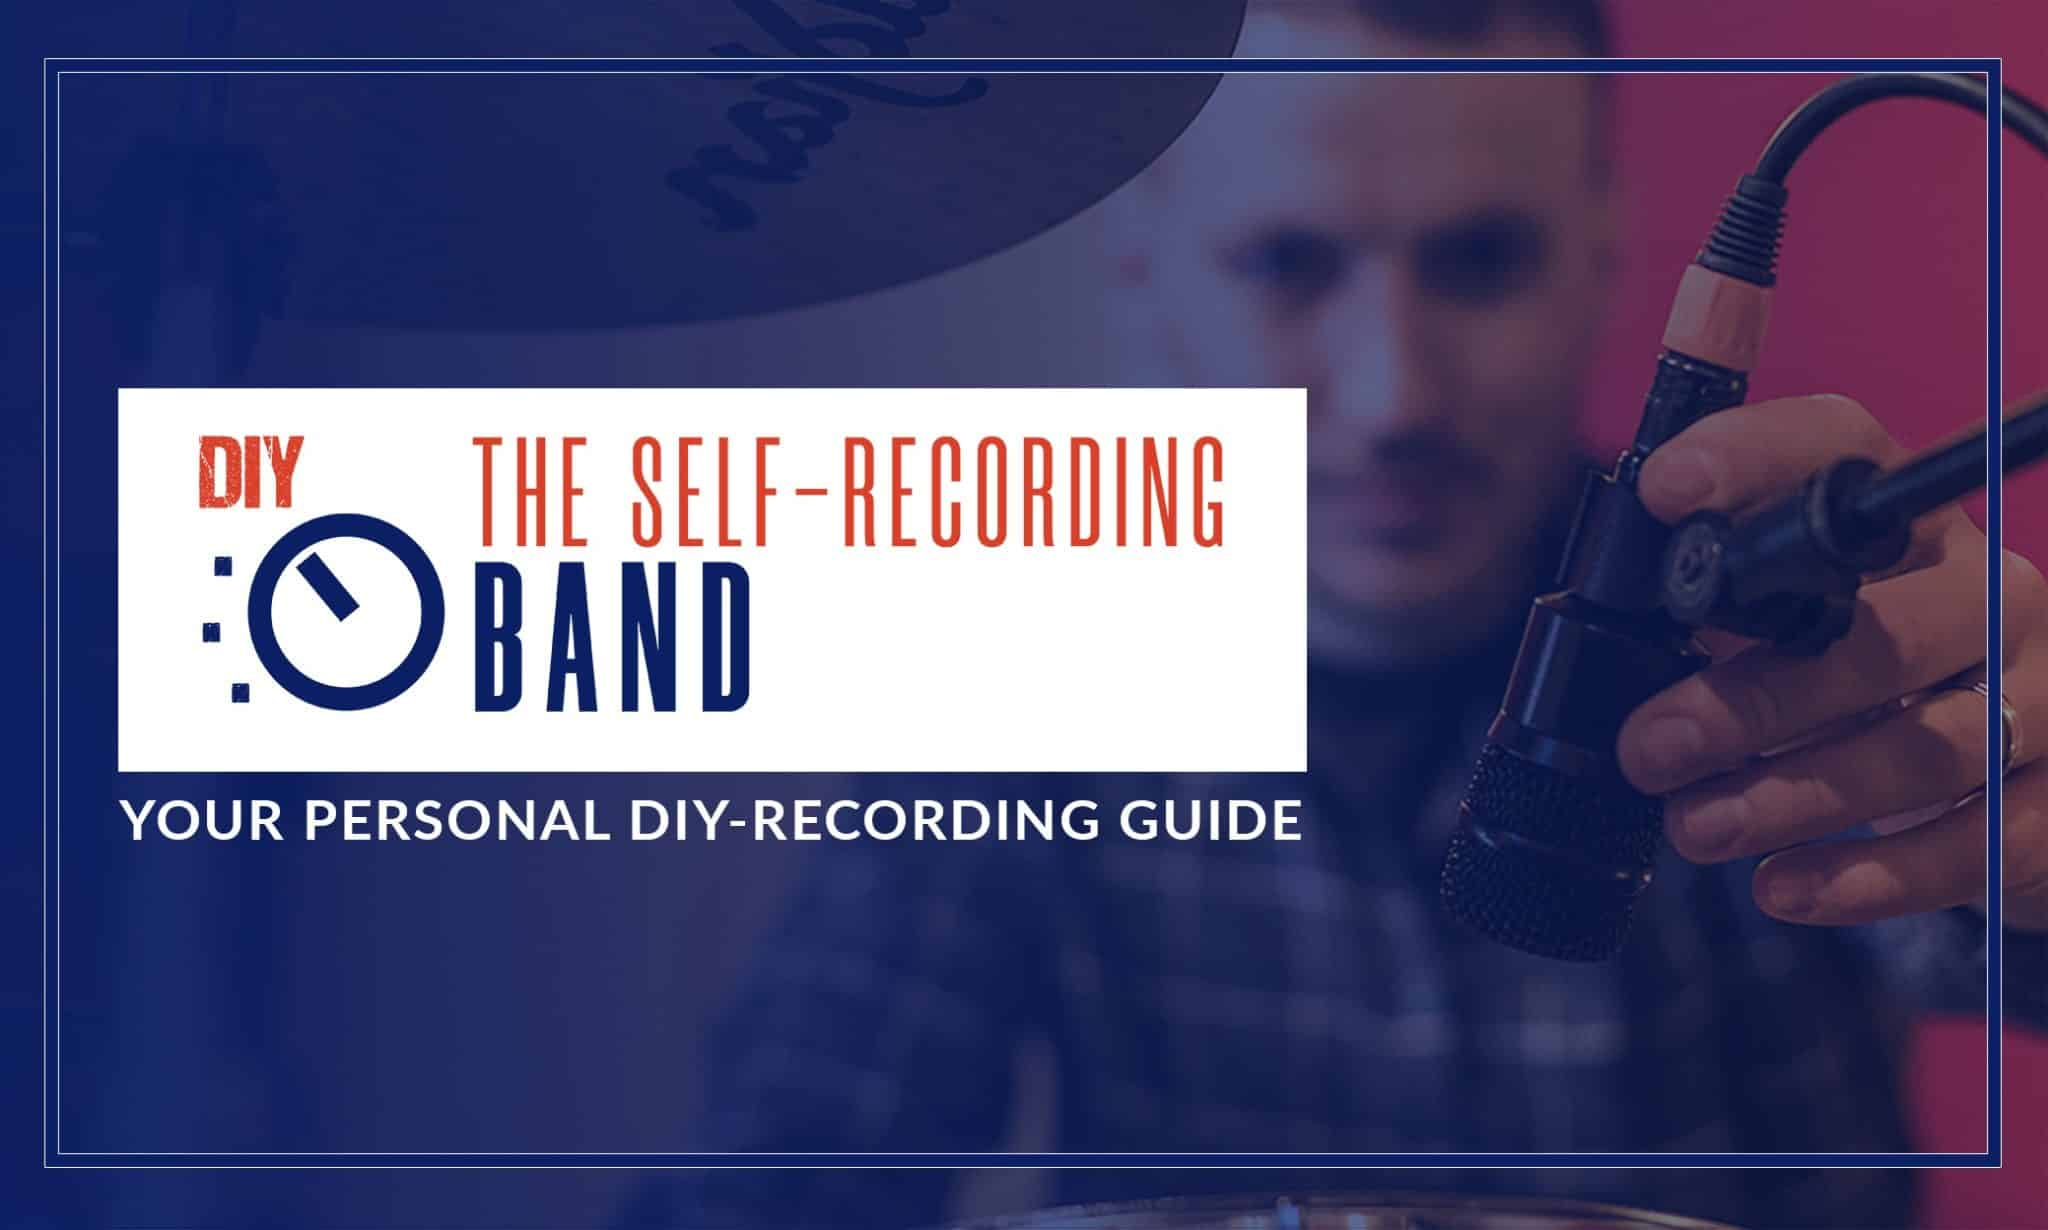 The Self-Recording Band